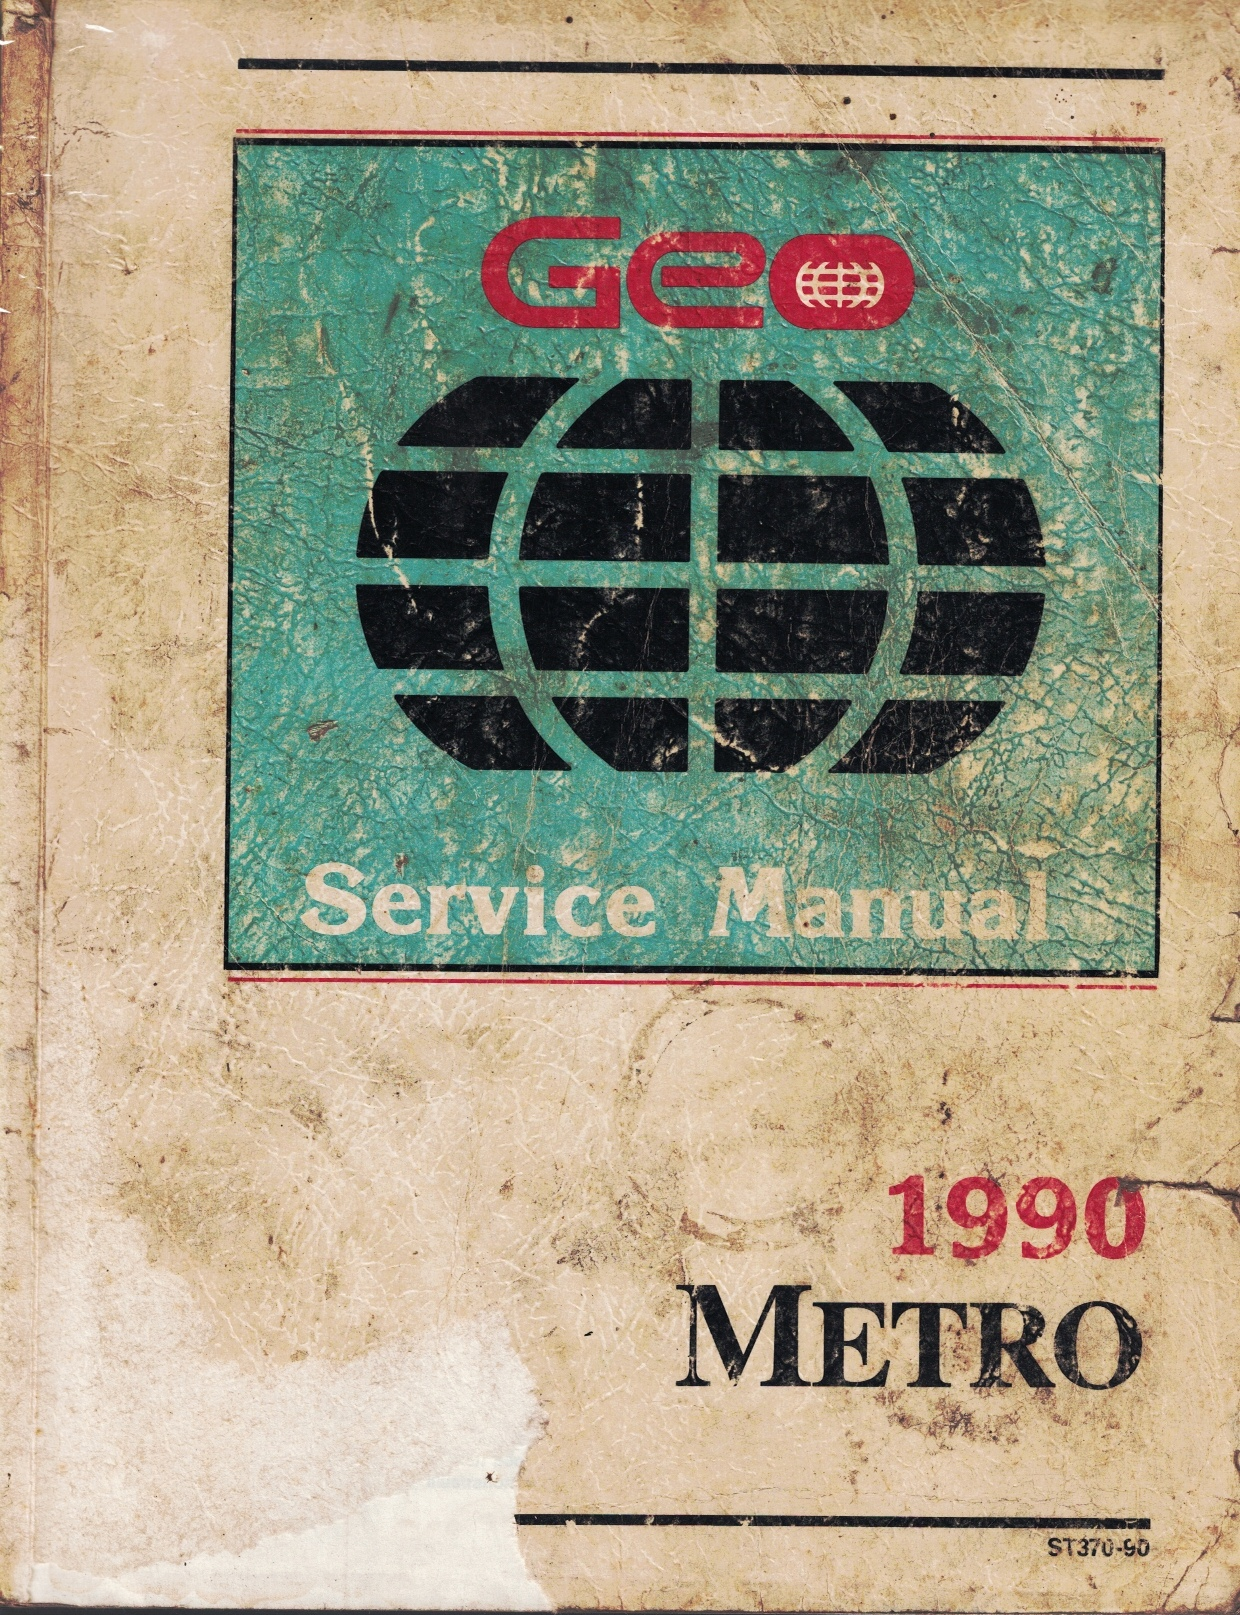 Image for 1990 Geo Metro Service Manual - 3 Volume Set - Includes the Service Manual, the Service Manual Supplement, and the Electrical Diagnosis Manual Supplement